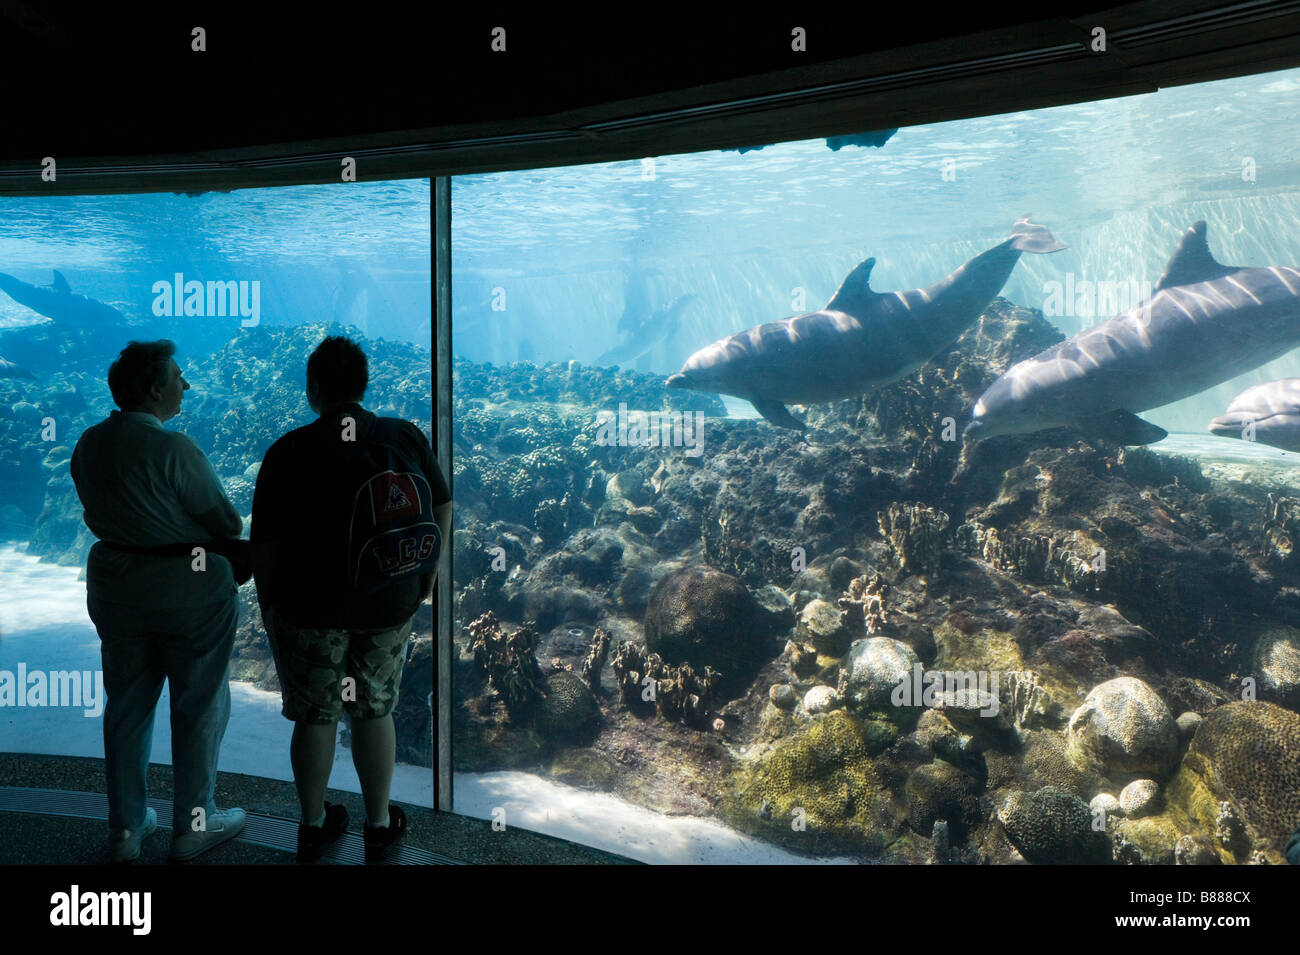 Underwater viewing area at Dolphin Cove, Sea World, Orlando, Central Florida, USA - Stock Image